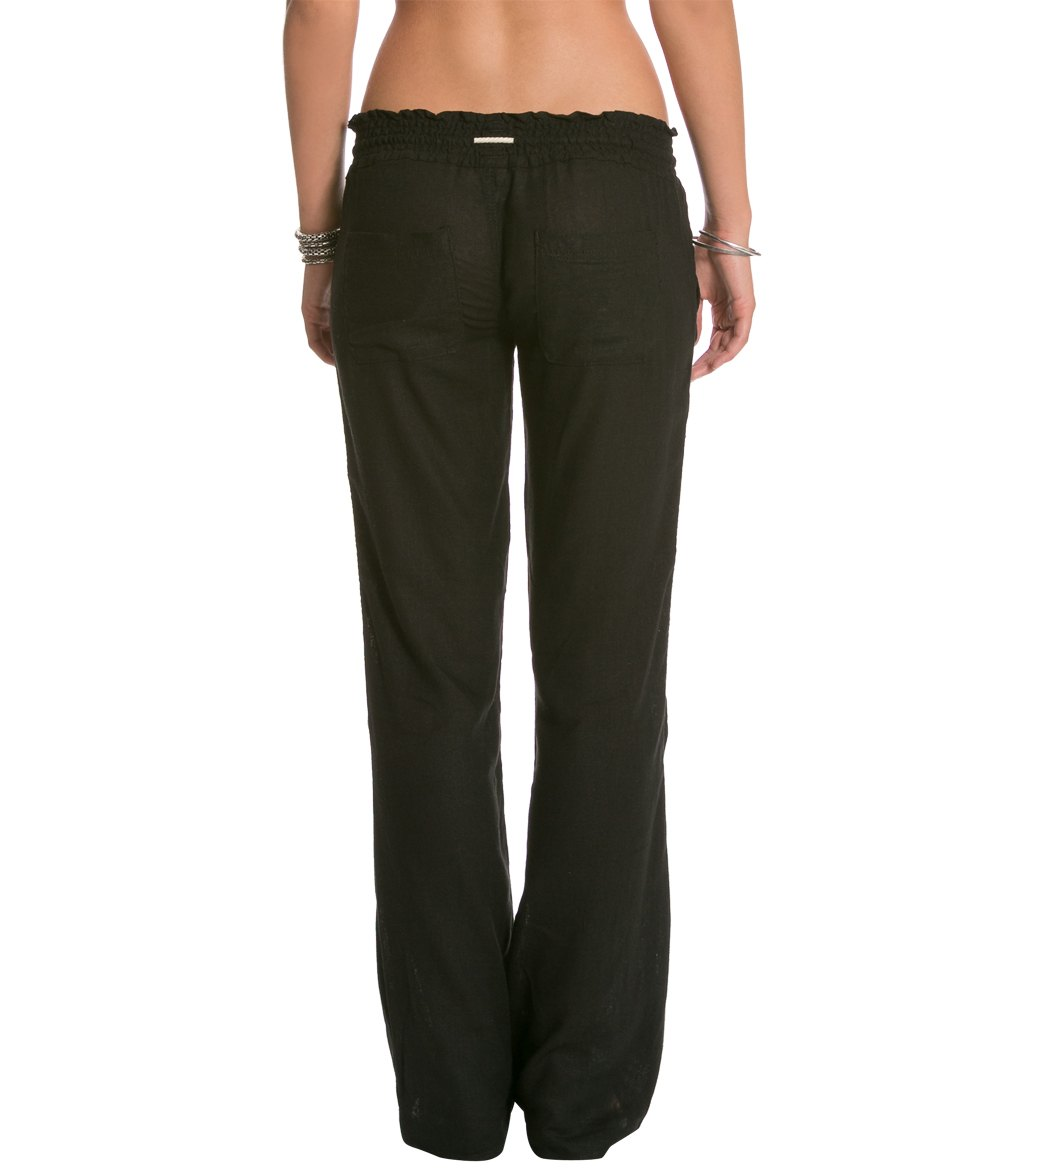 76d4d17cb4 Roxy Ocean Side Beach Pant at SwimOutlet.com